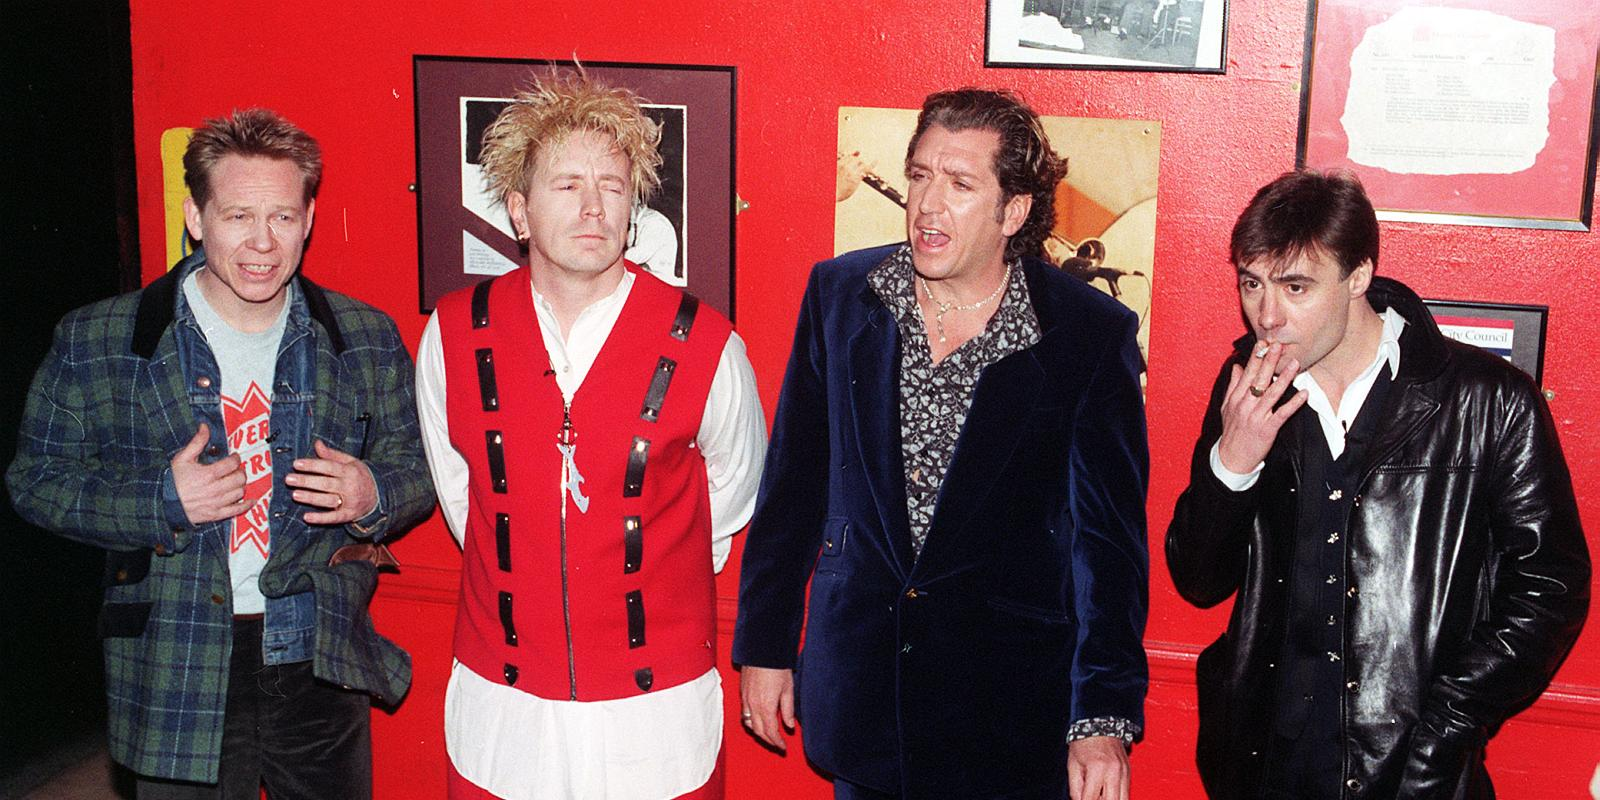 Sex Pistols reunion ruled out by bassist Glen MatlockSex Pistols bassist rules out reunion - 웹